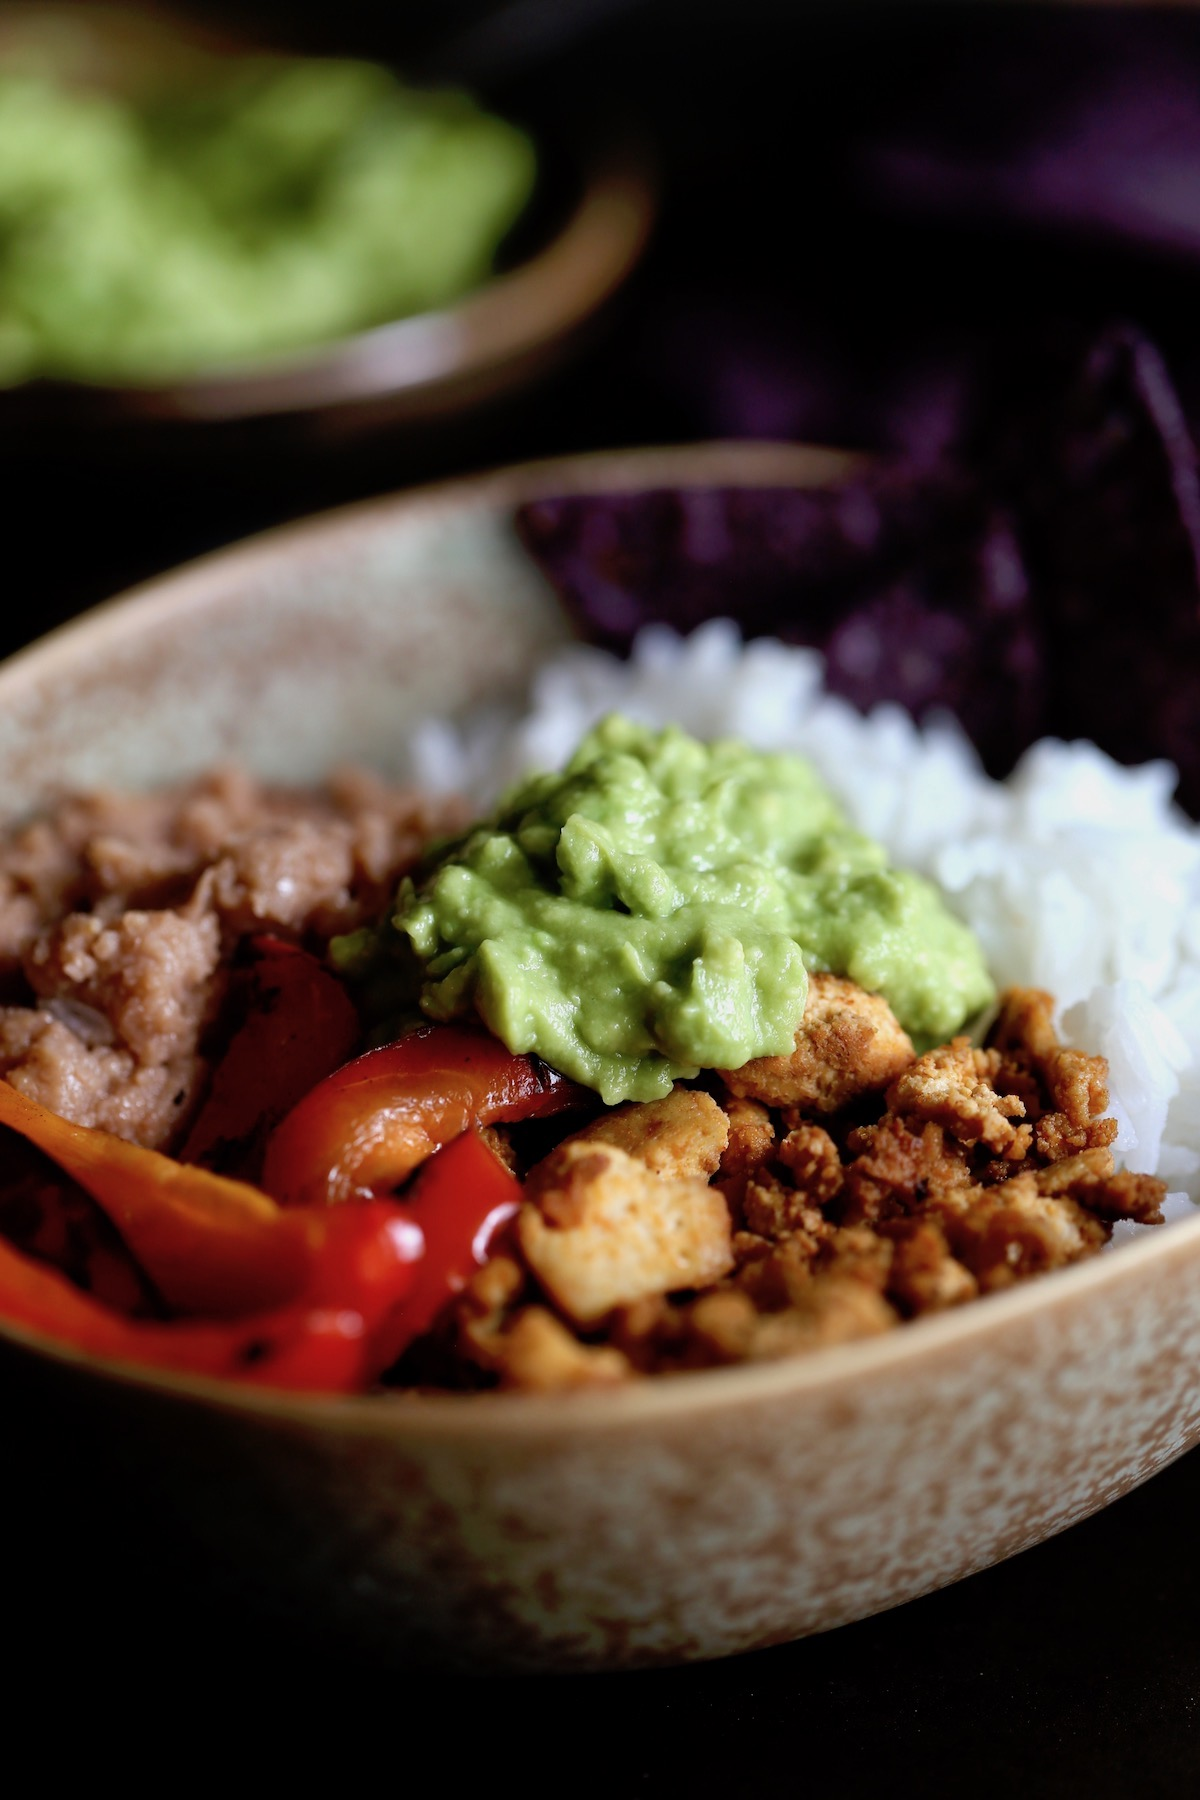 a vegan burrito bowl loaded with white rice, refried beans, taco tofu crumbles, sauteed peppers and homemade guac